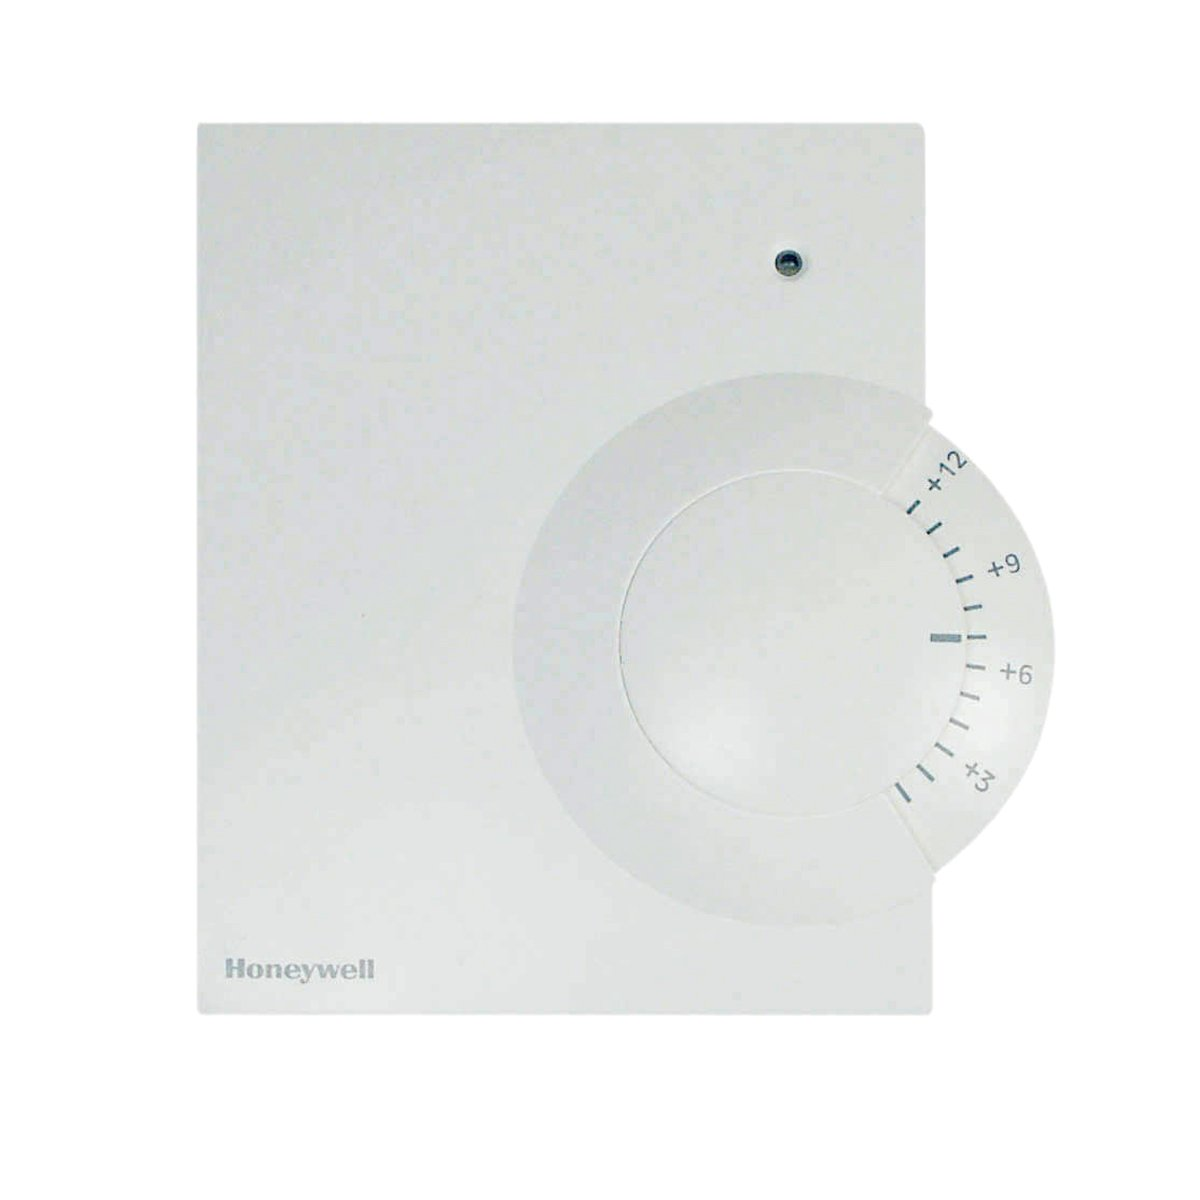 Honeywell Evohome Wireless Room Thermostat Control For Use With Floor Control HCW82